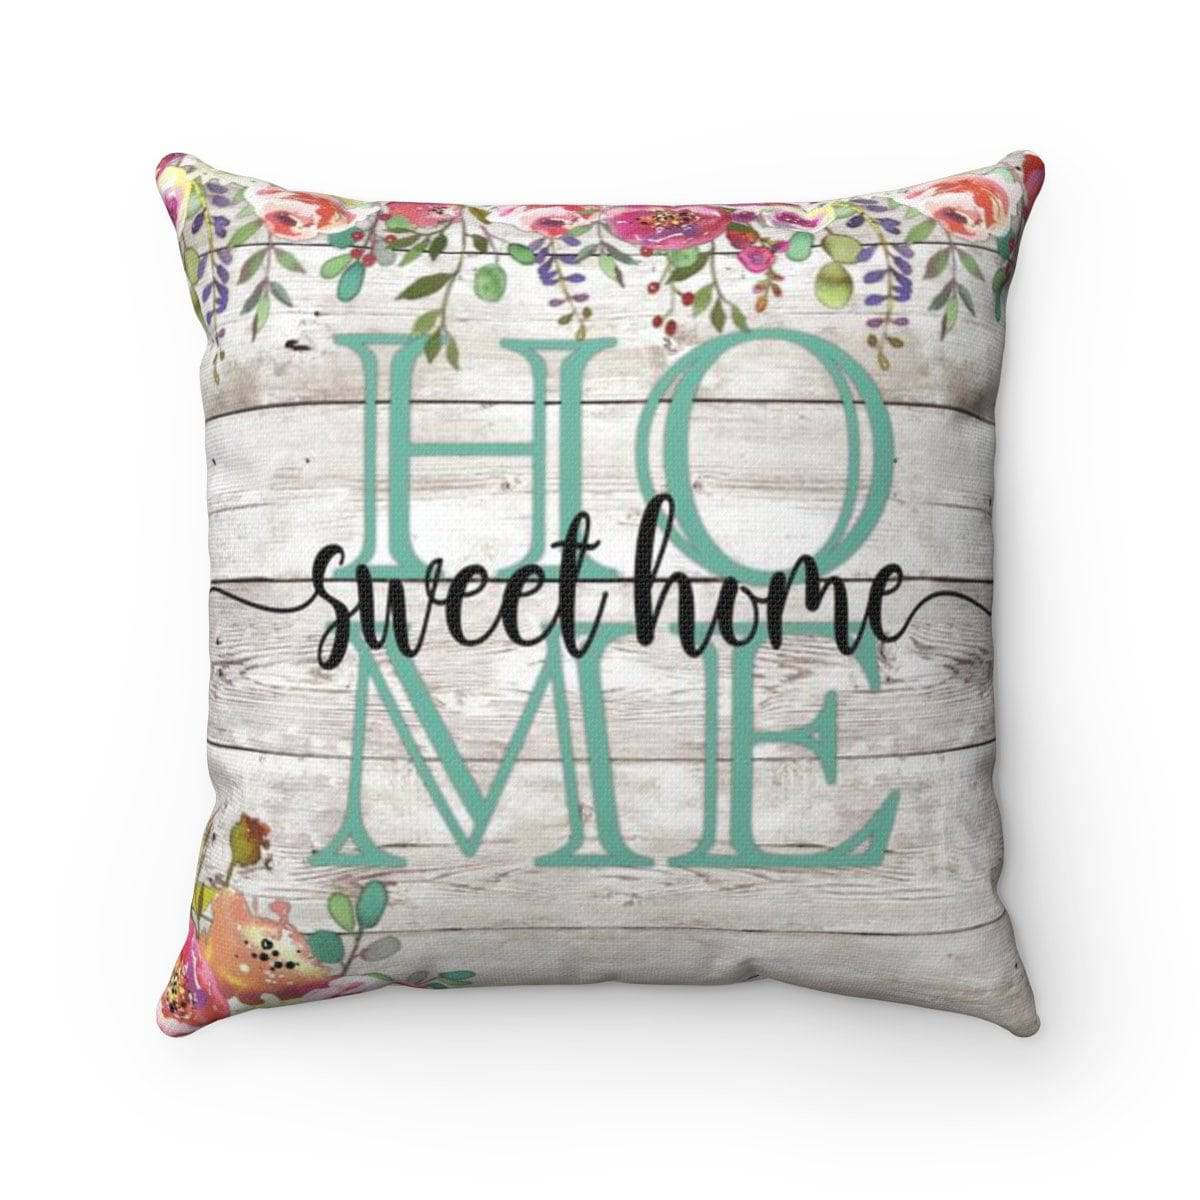 Home Sweet Home Seafoam Square Pillow